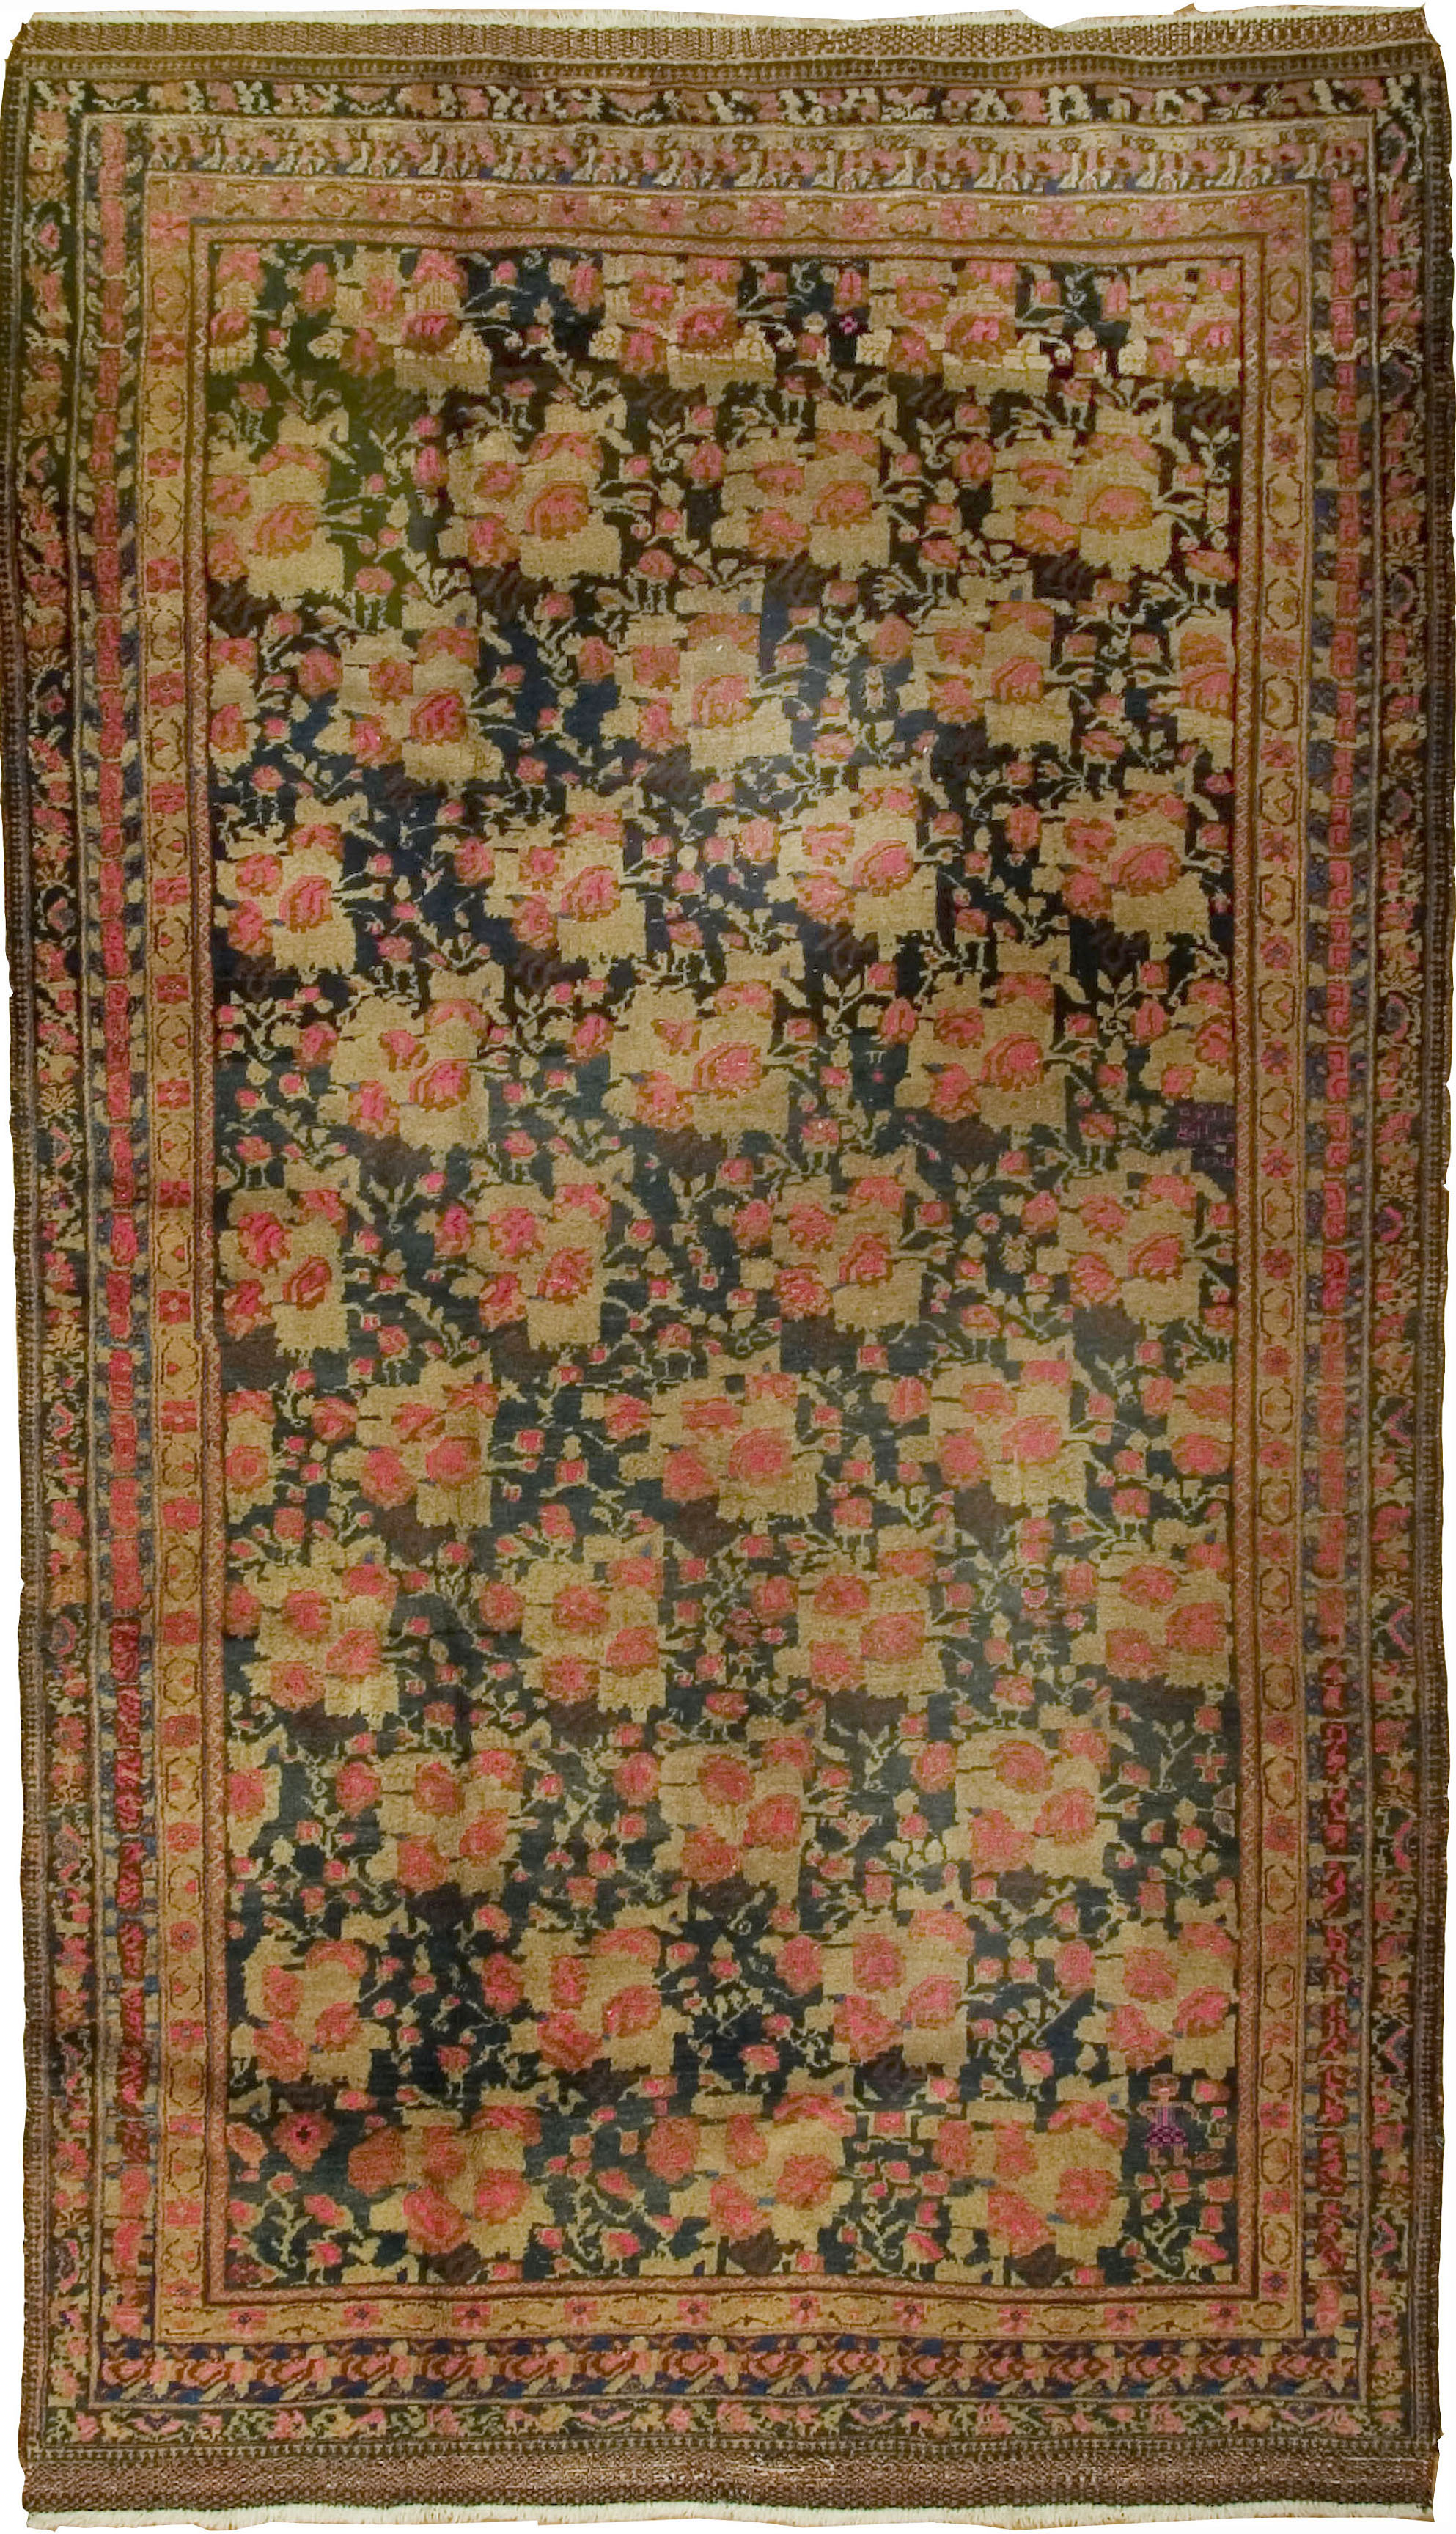 Antique Afshar Tribal Rugs